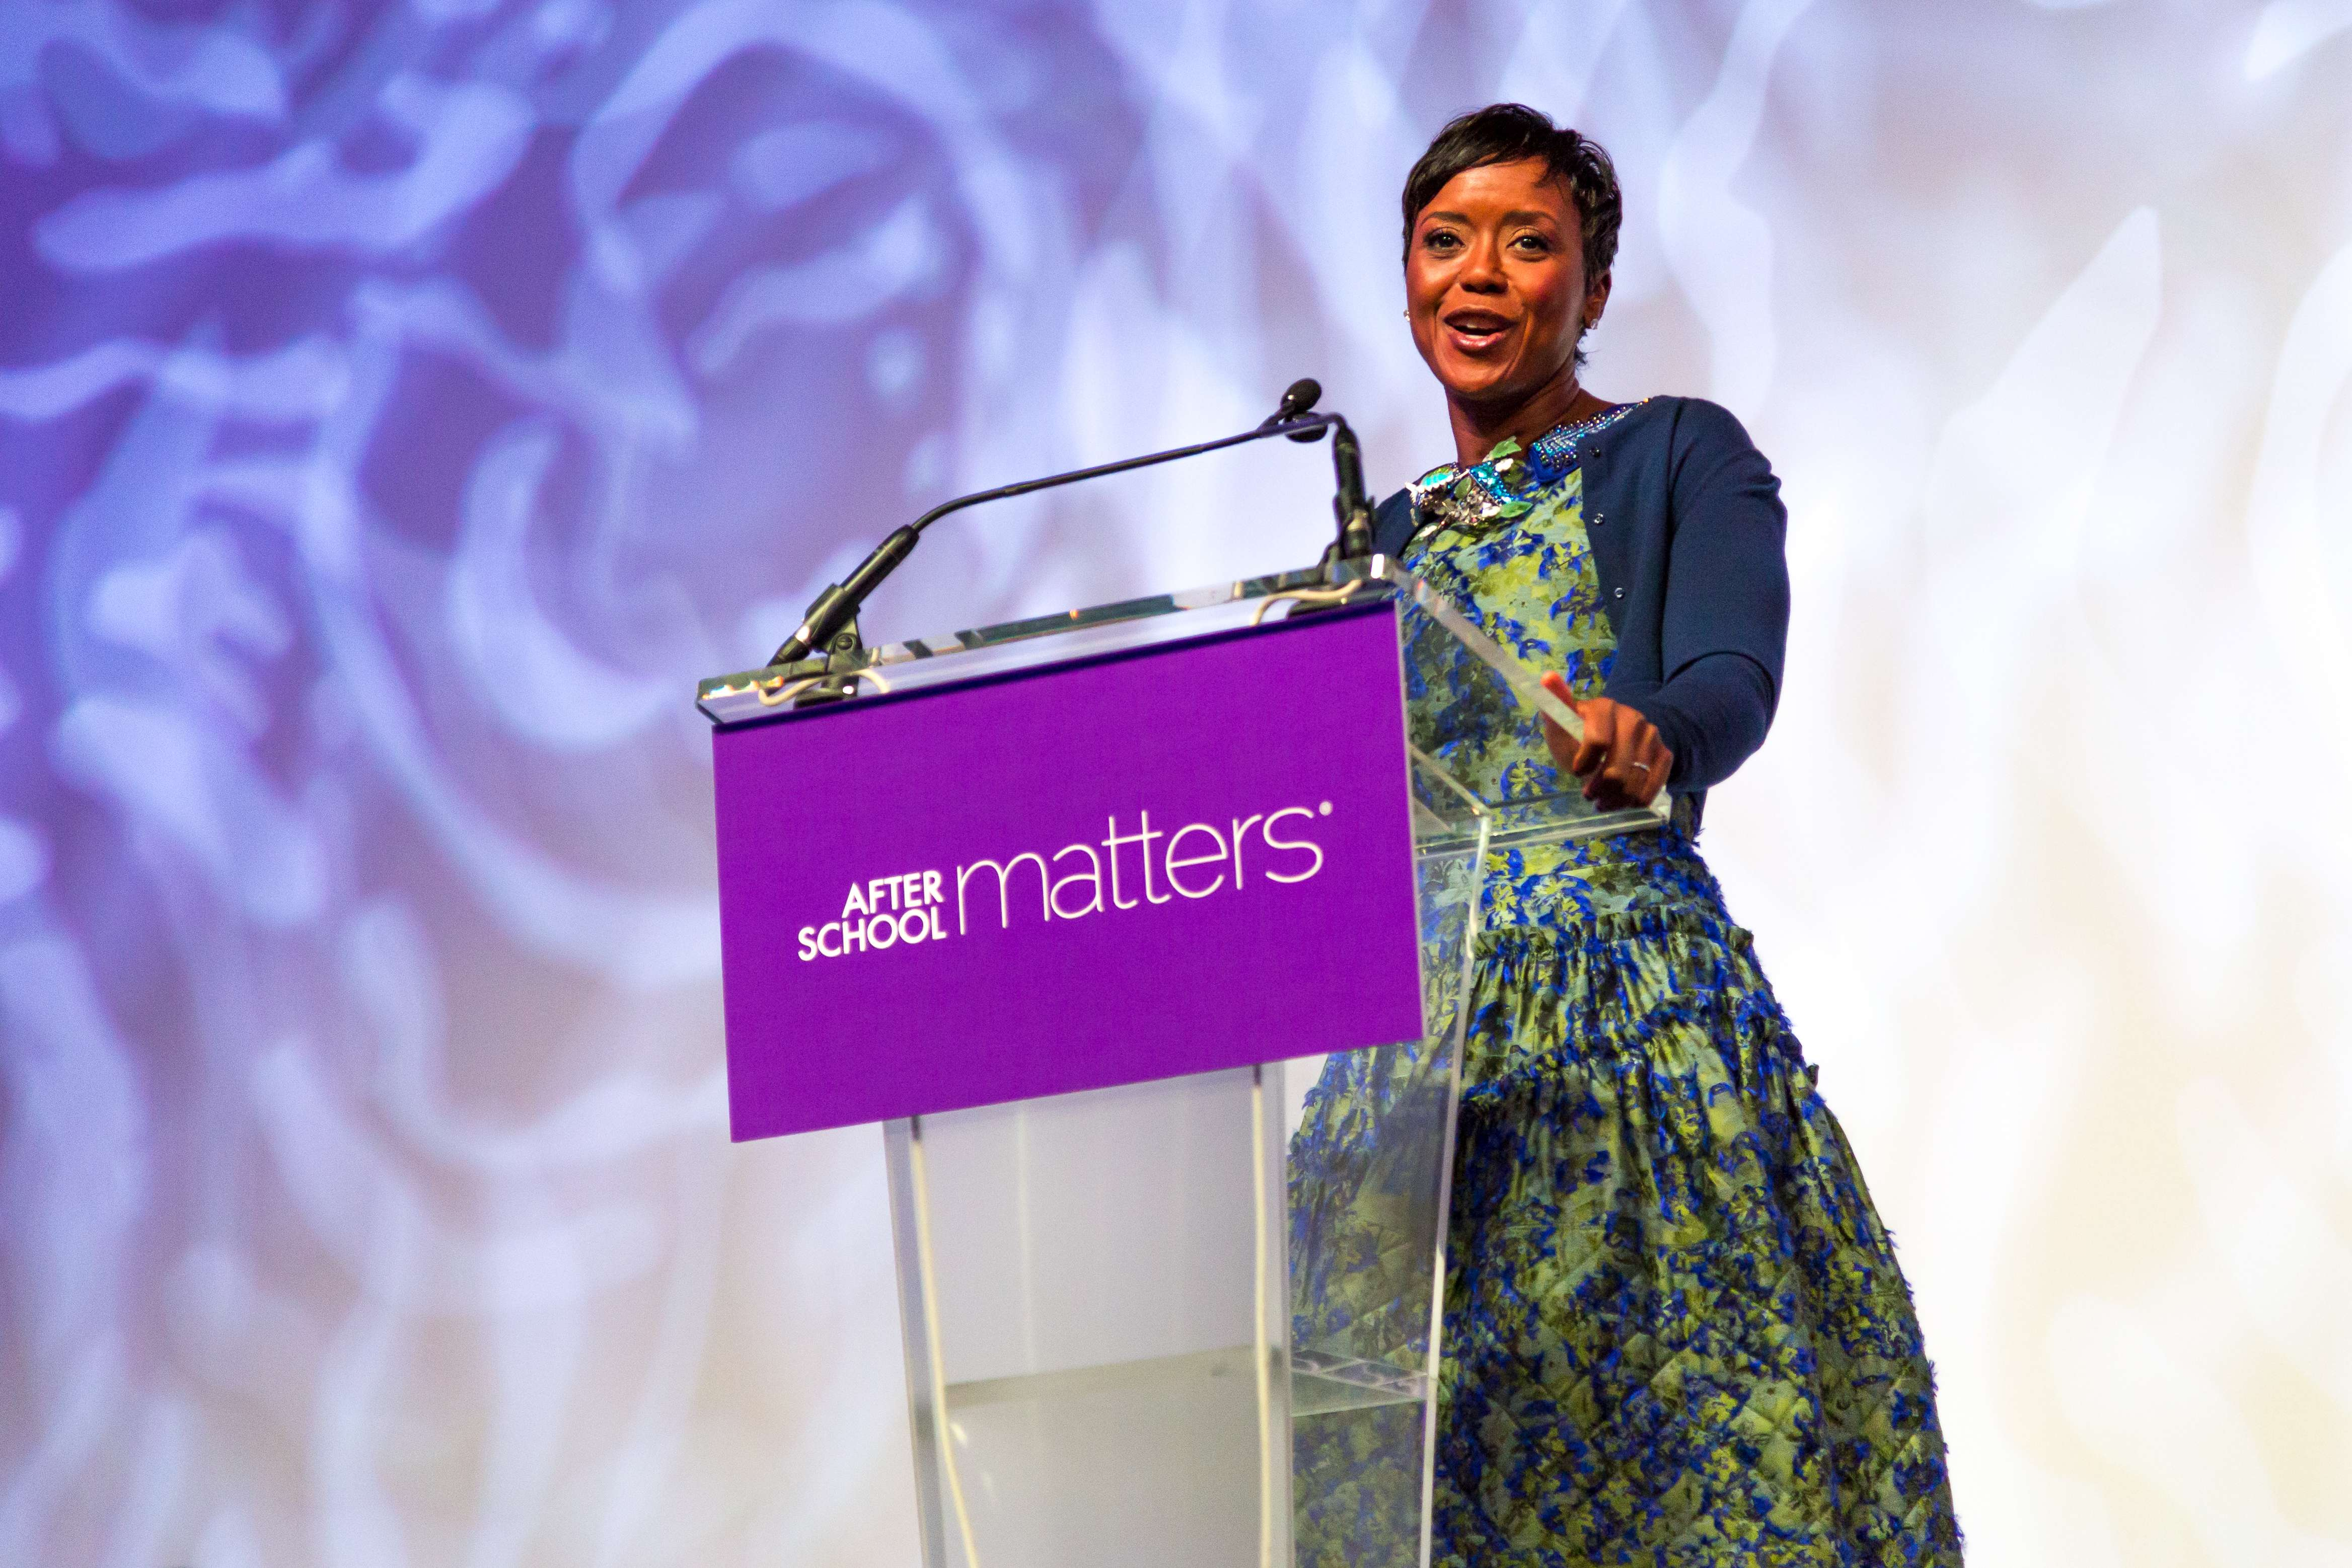 <p>After School Matters Board Chair Mellody Hobson speaks to the crowd of nearly 800 supporters at the After School Matters Annual Gala on September 18, 2017 in the brand-new Wintrust Arena. Photo credit: Juan Martinez Photography</p>